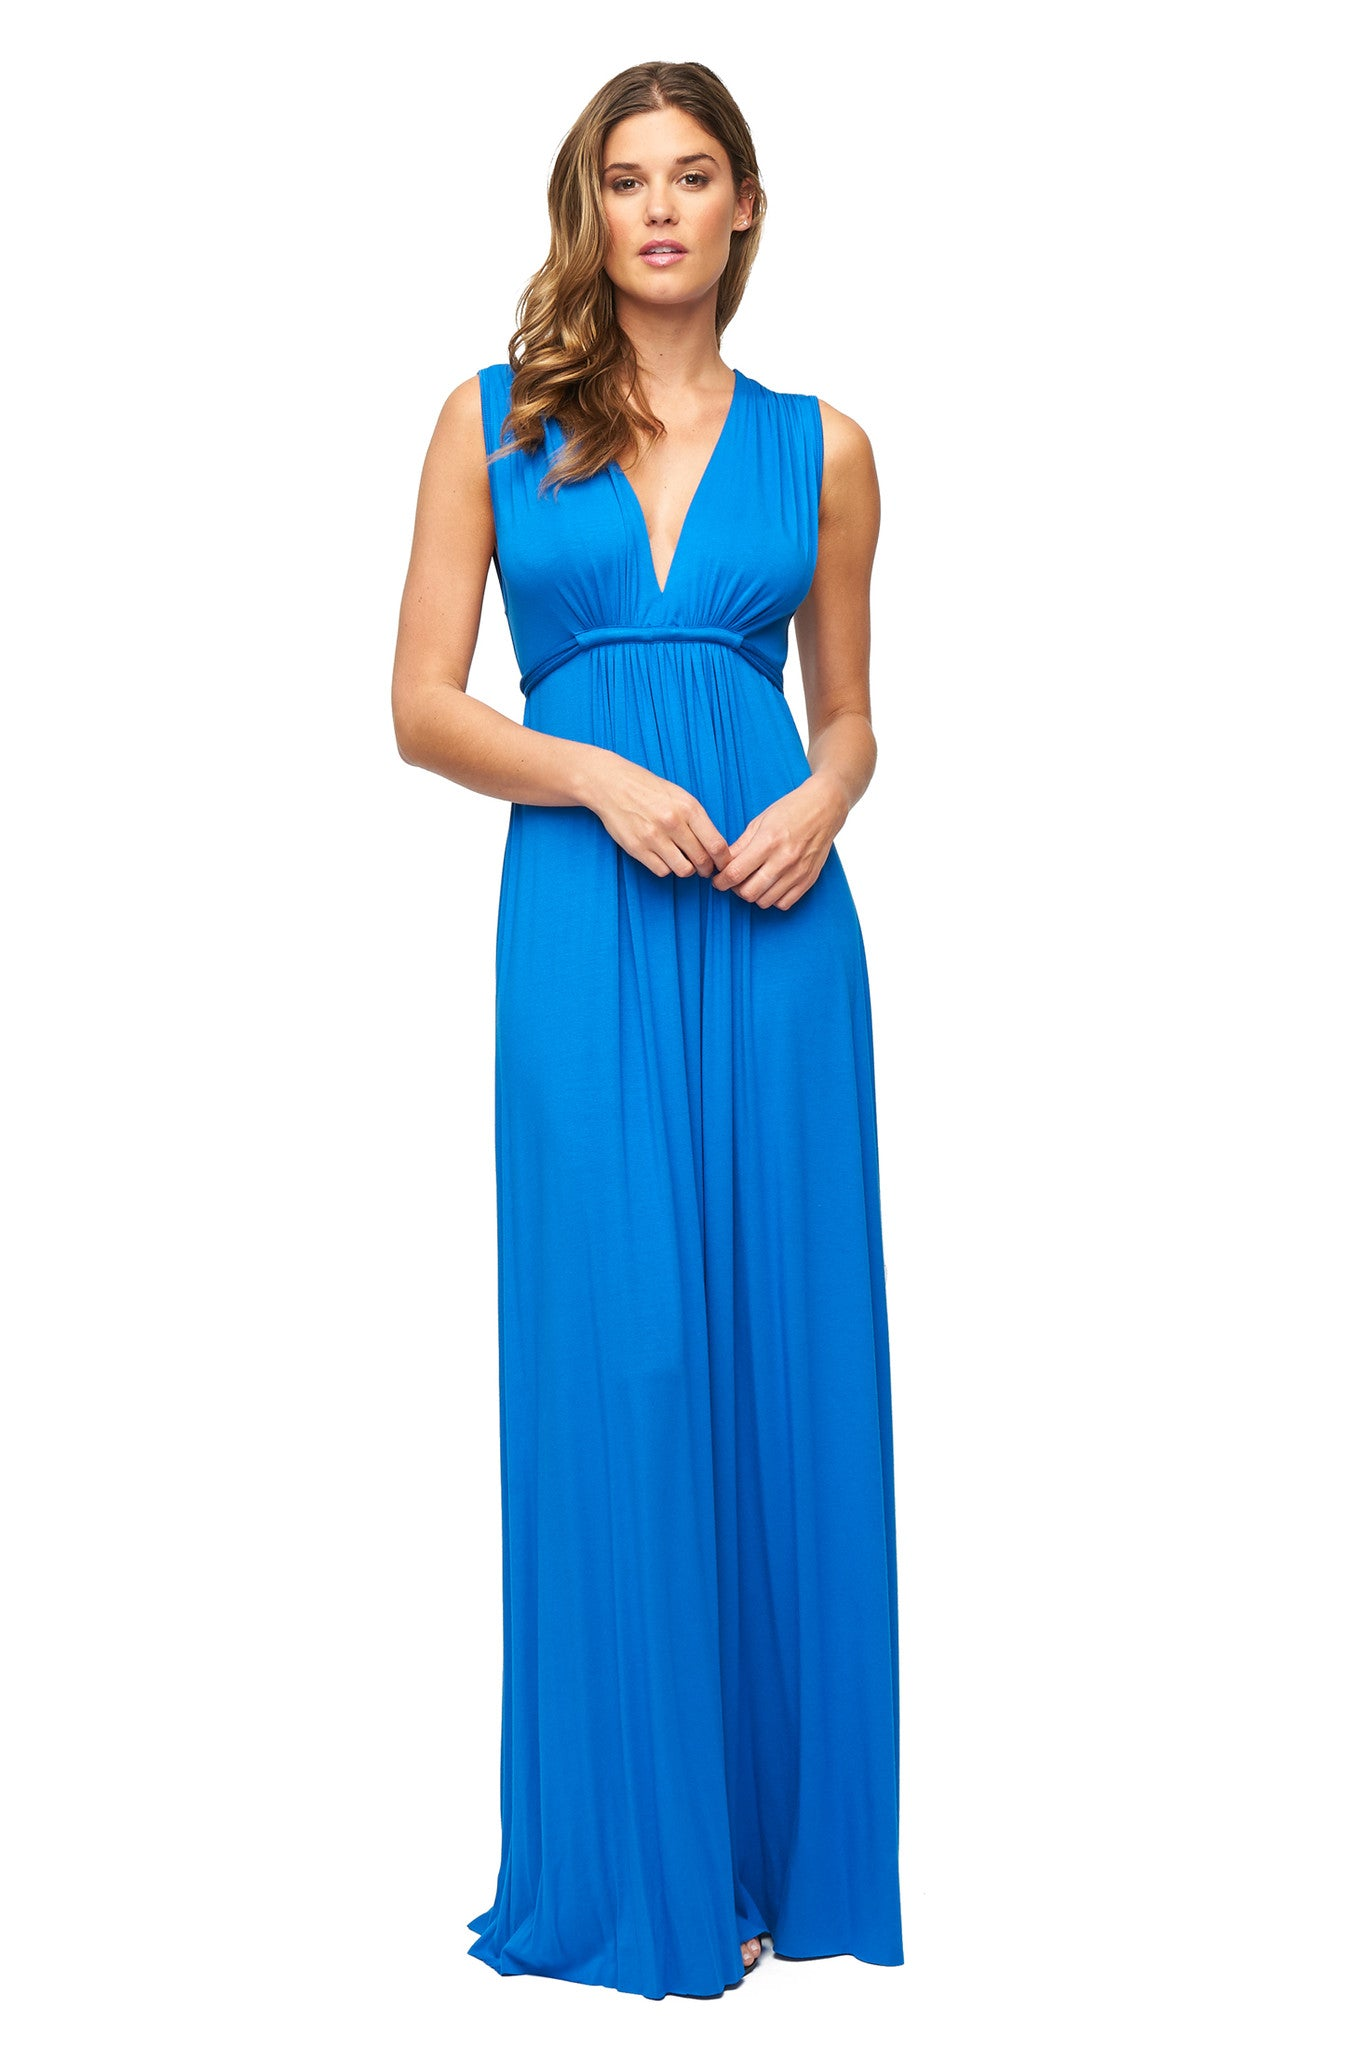 Long Sleeveless Caftan Dress - Delta